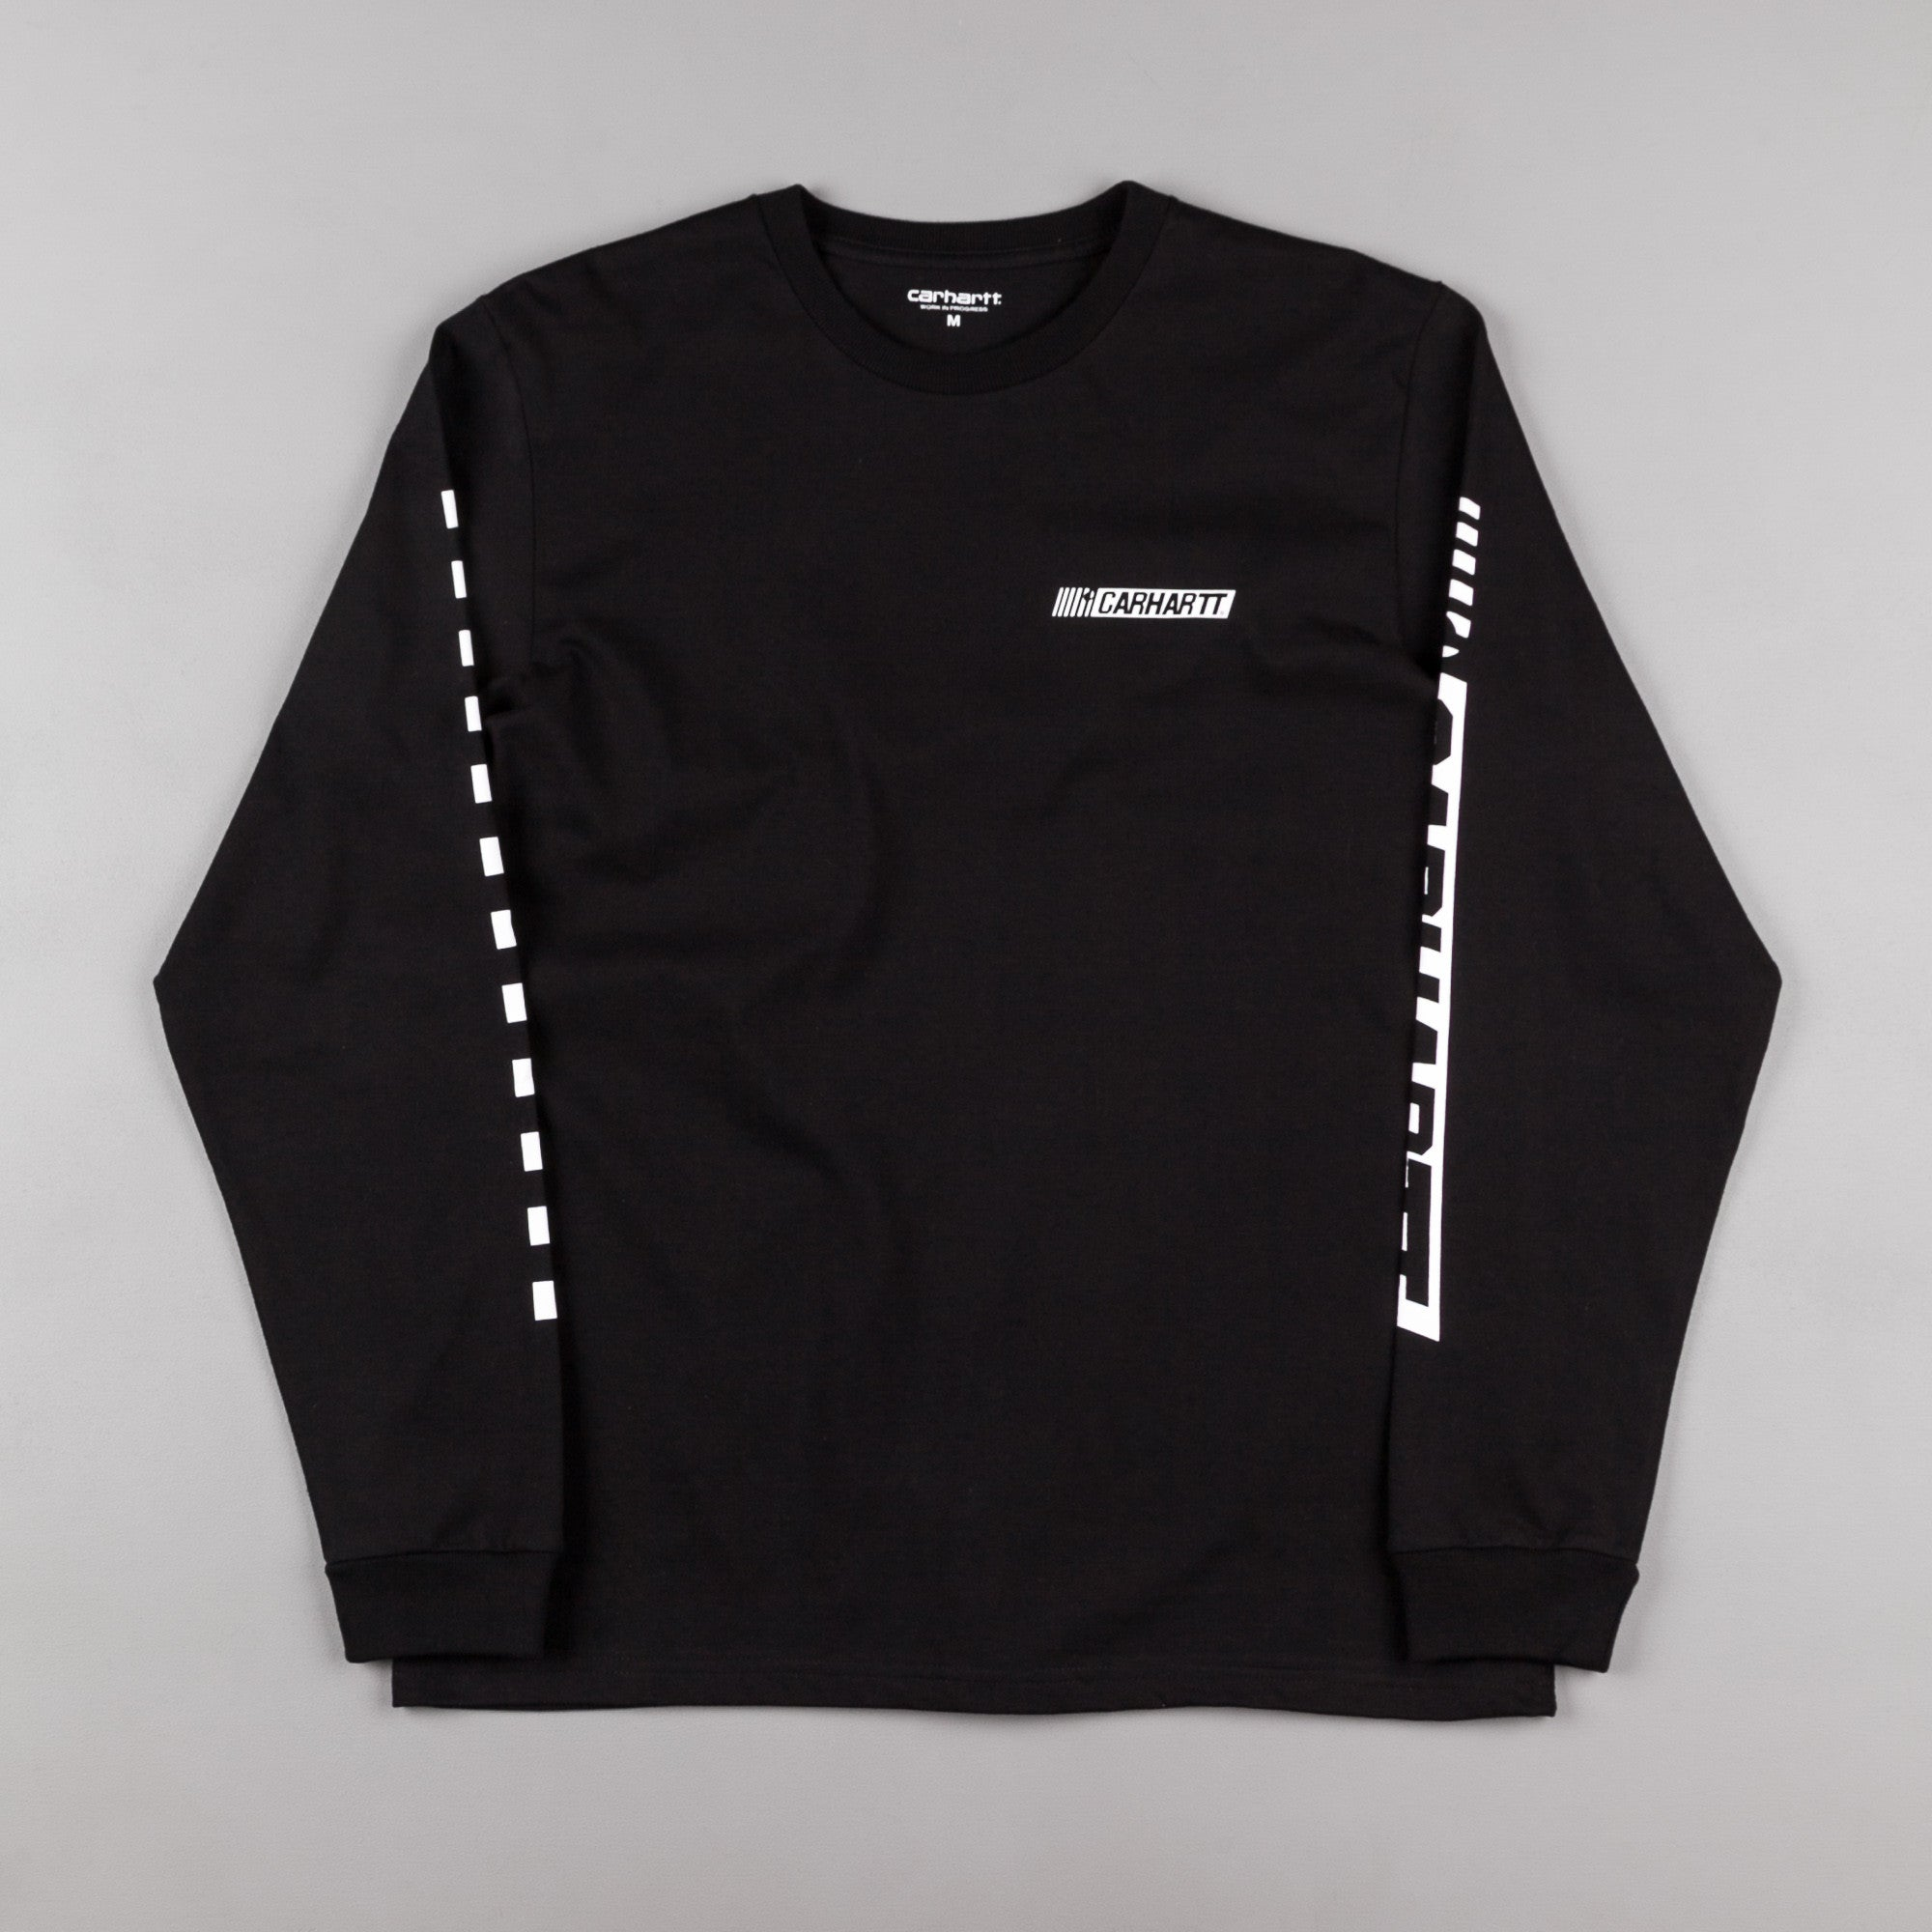 Carhartt Cart Long Sleeve T-Shirt - Black / White